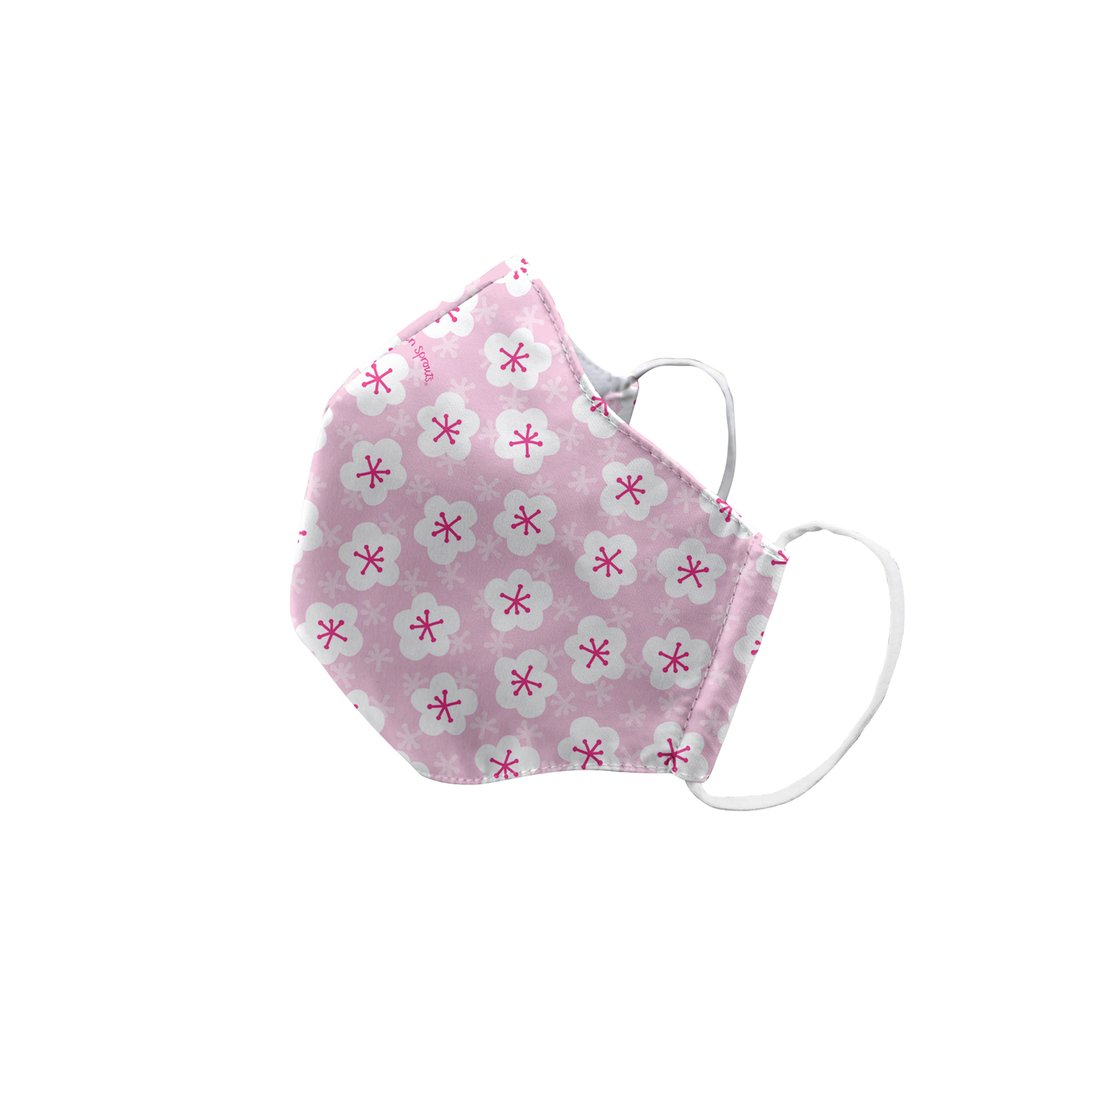 Green Sprouts Child Reusable Face Mask - Pink Blossoms